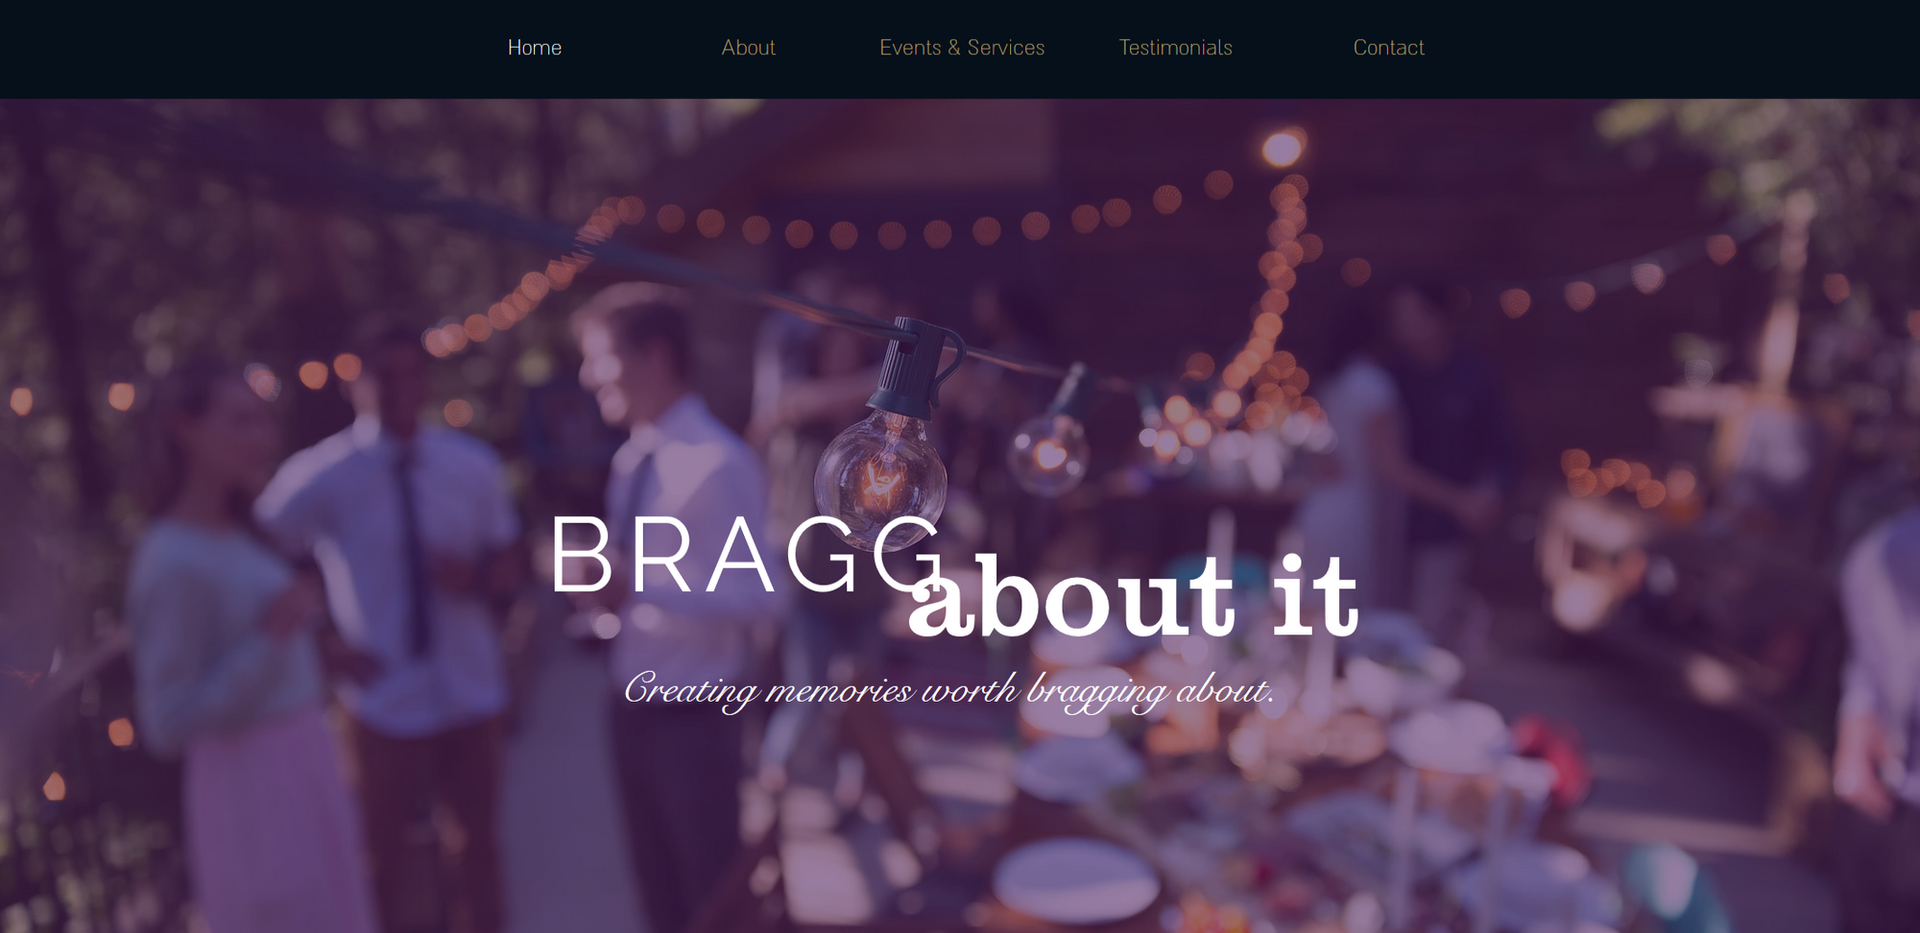 BRAGG About It Events